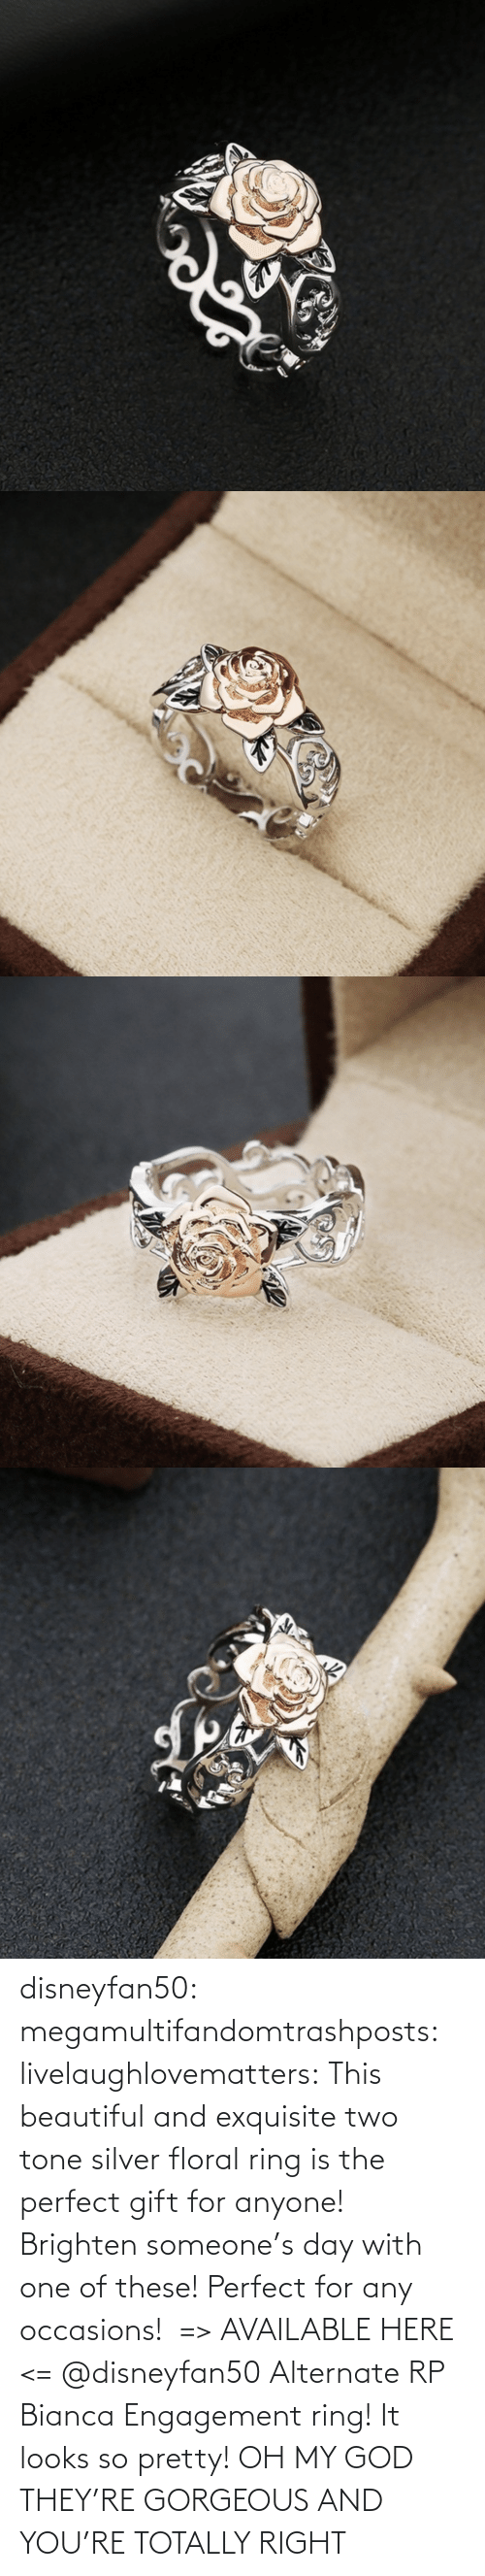 These: disneyfan50: megamultifandomtrashposts:  livelaughlovematters:  This beautiful and exquisite two tone silver floral ring is the perfect gift for anyone! Brighten someone's day with one of these! Perfect for any occasions!  => AVAILABLE HERE <=    @disneyfan50 Alternate RP Bianca Engagement ring! It looks so pretty!  OH MY GOD THEY'RE GORGEOUS AND YOU'RE TOTALLY RIGHT